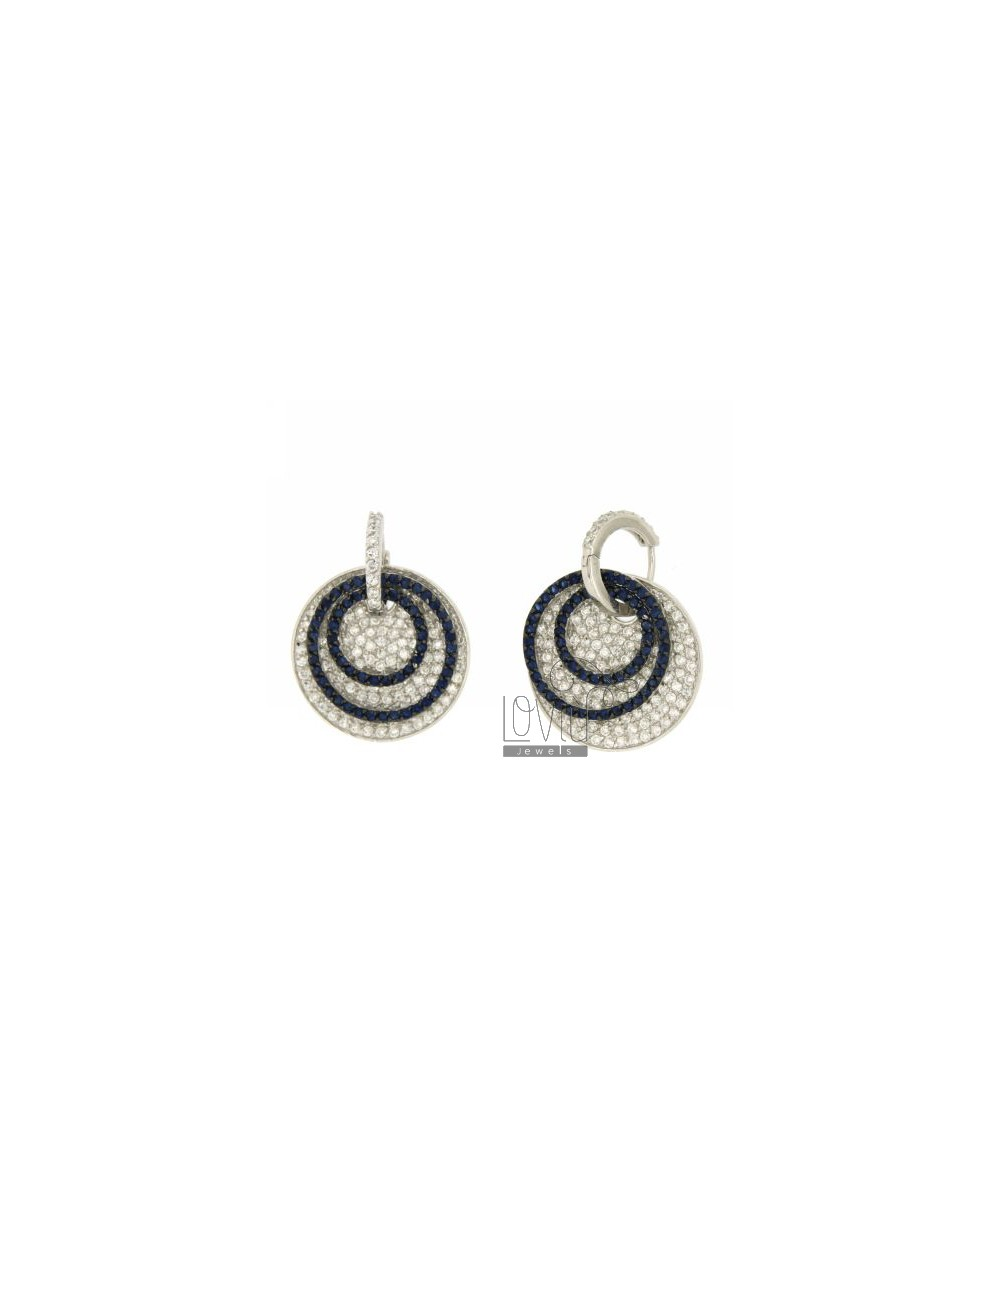 HOOP EARRINGS WITH ROUND PENDANT WITH PAVE &39OF ZIRCONIA WHITE AND BLUE 26 MM IN AG TIT RODIATO 925 ‰